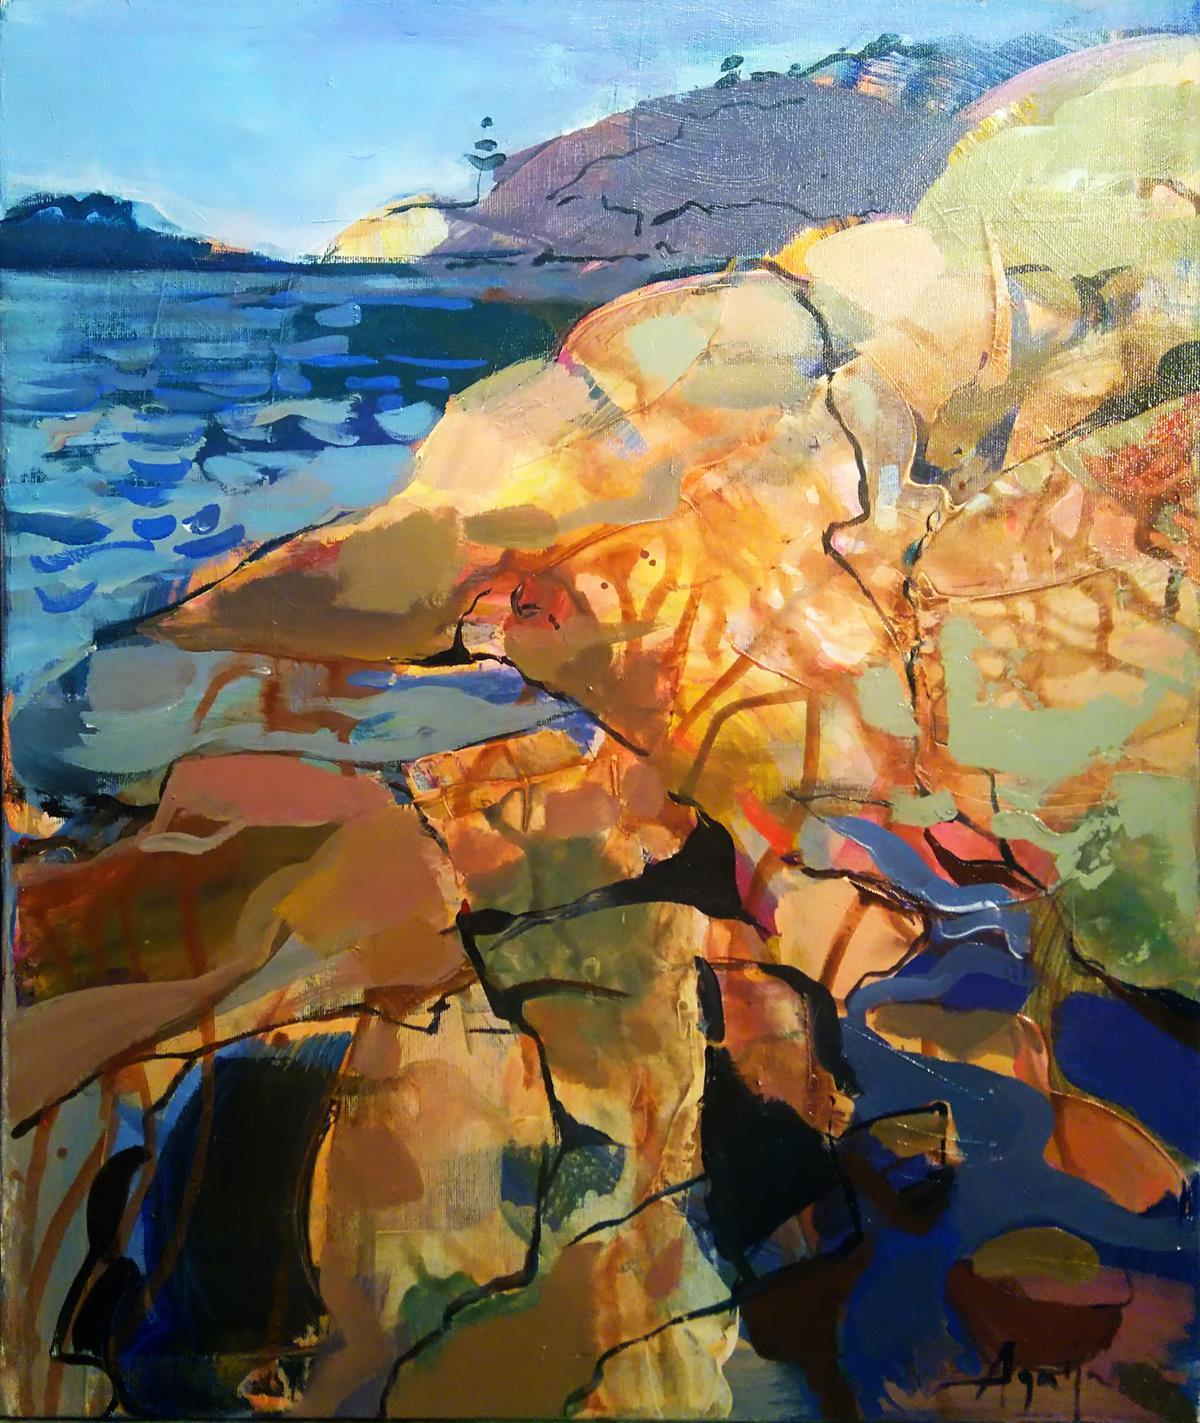 Stone Island - abstract oil painting modern contemporary artwork landscape coast